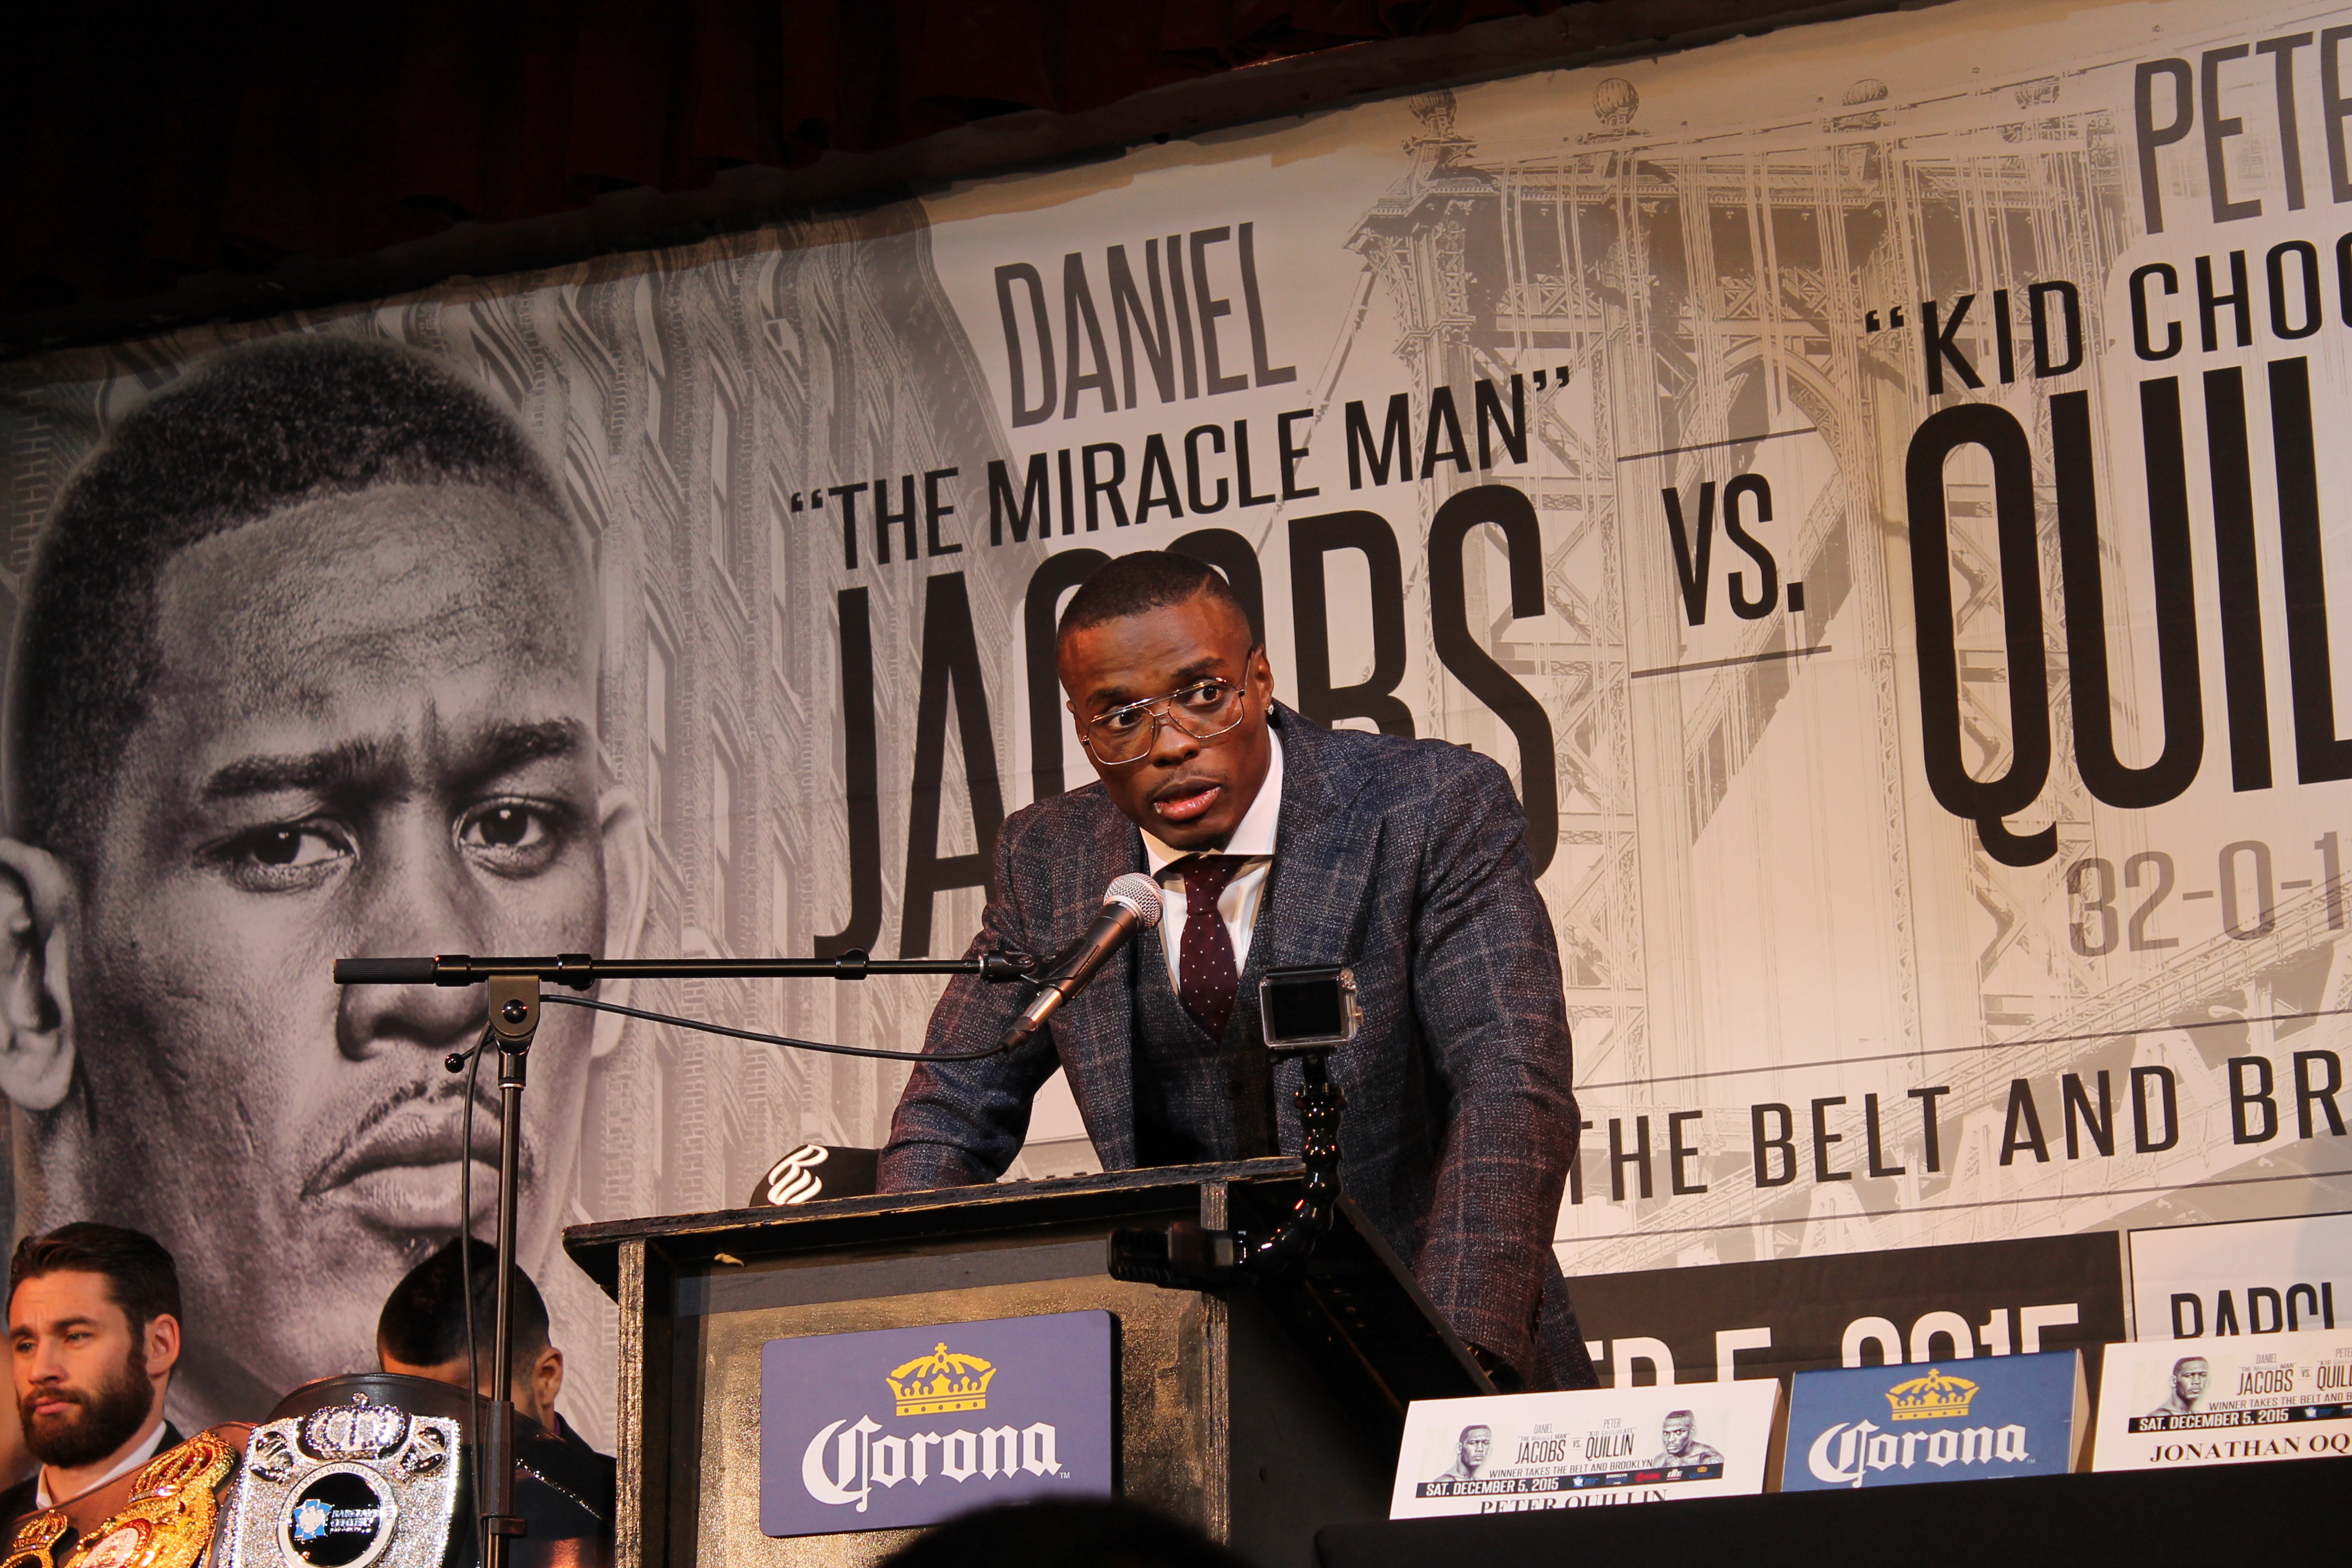 PETER QUILLIN LEADS PRAYER FOR FALLEN BOXER